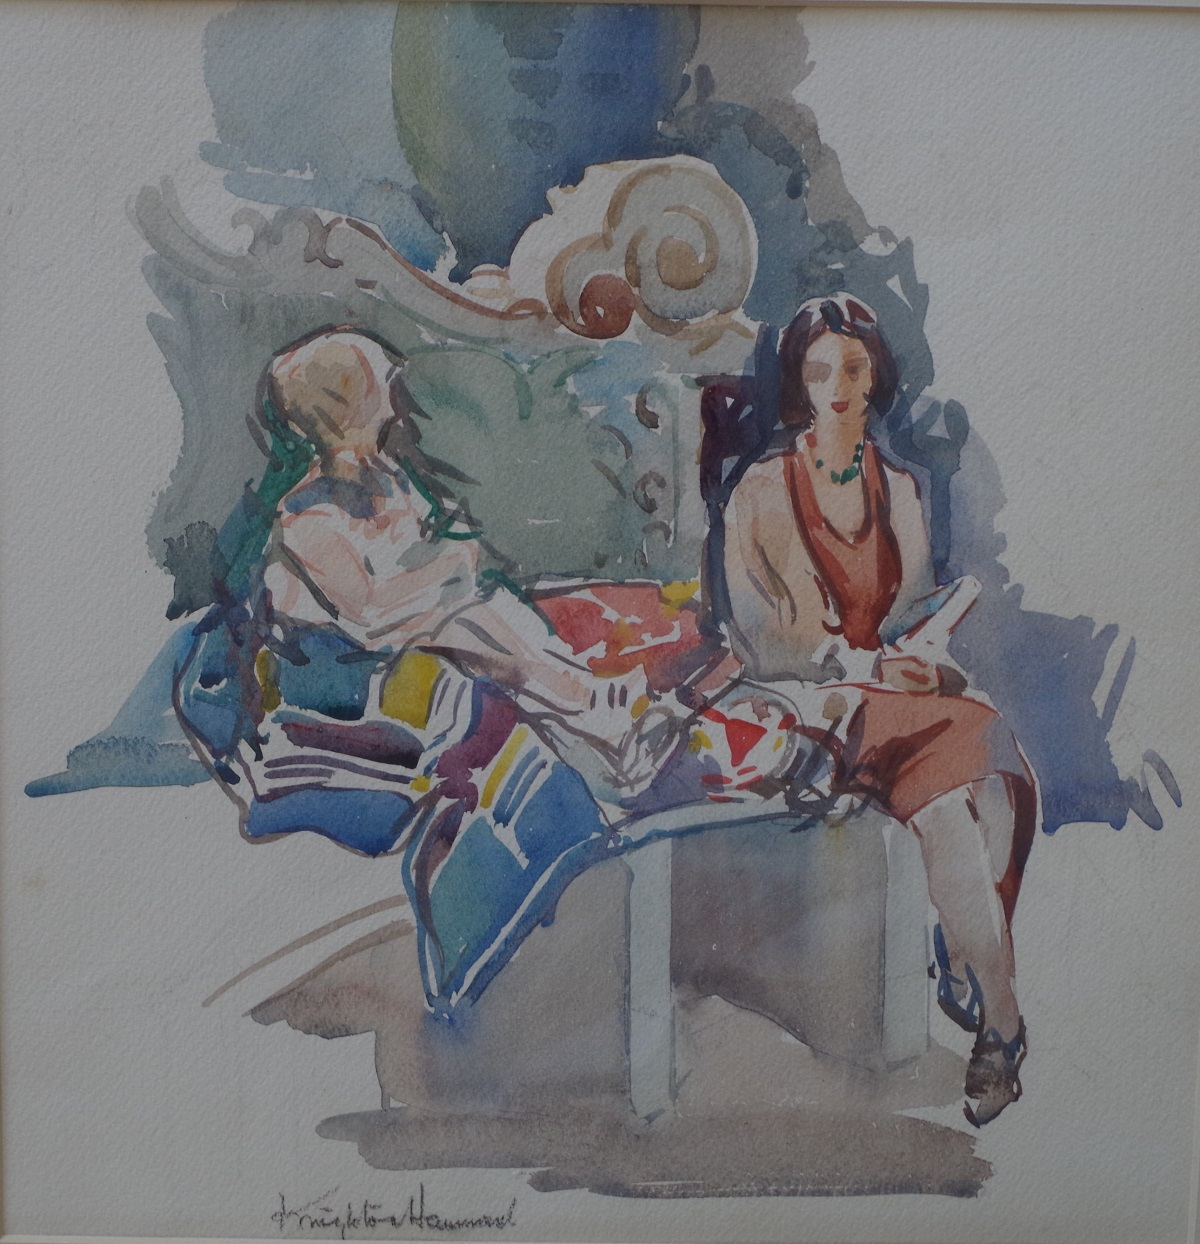 Mary and her mother sitting on a seat